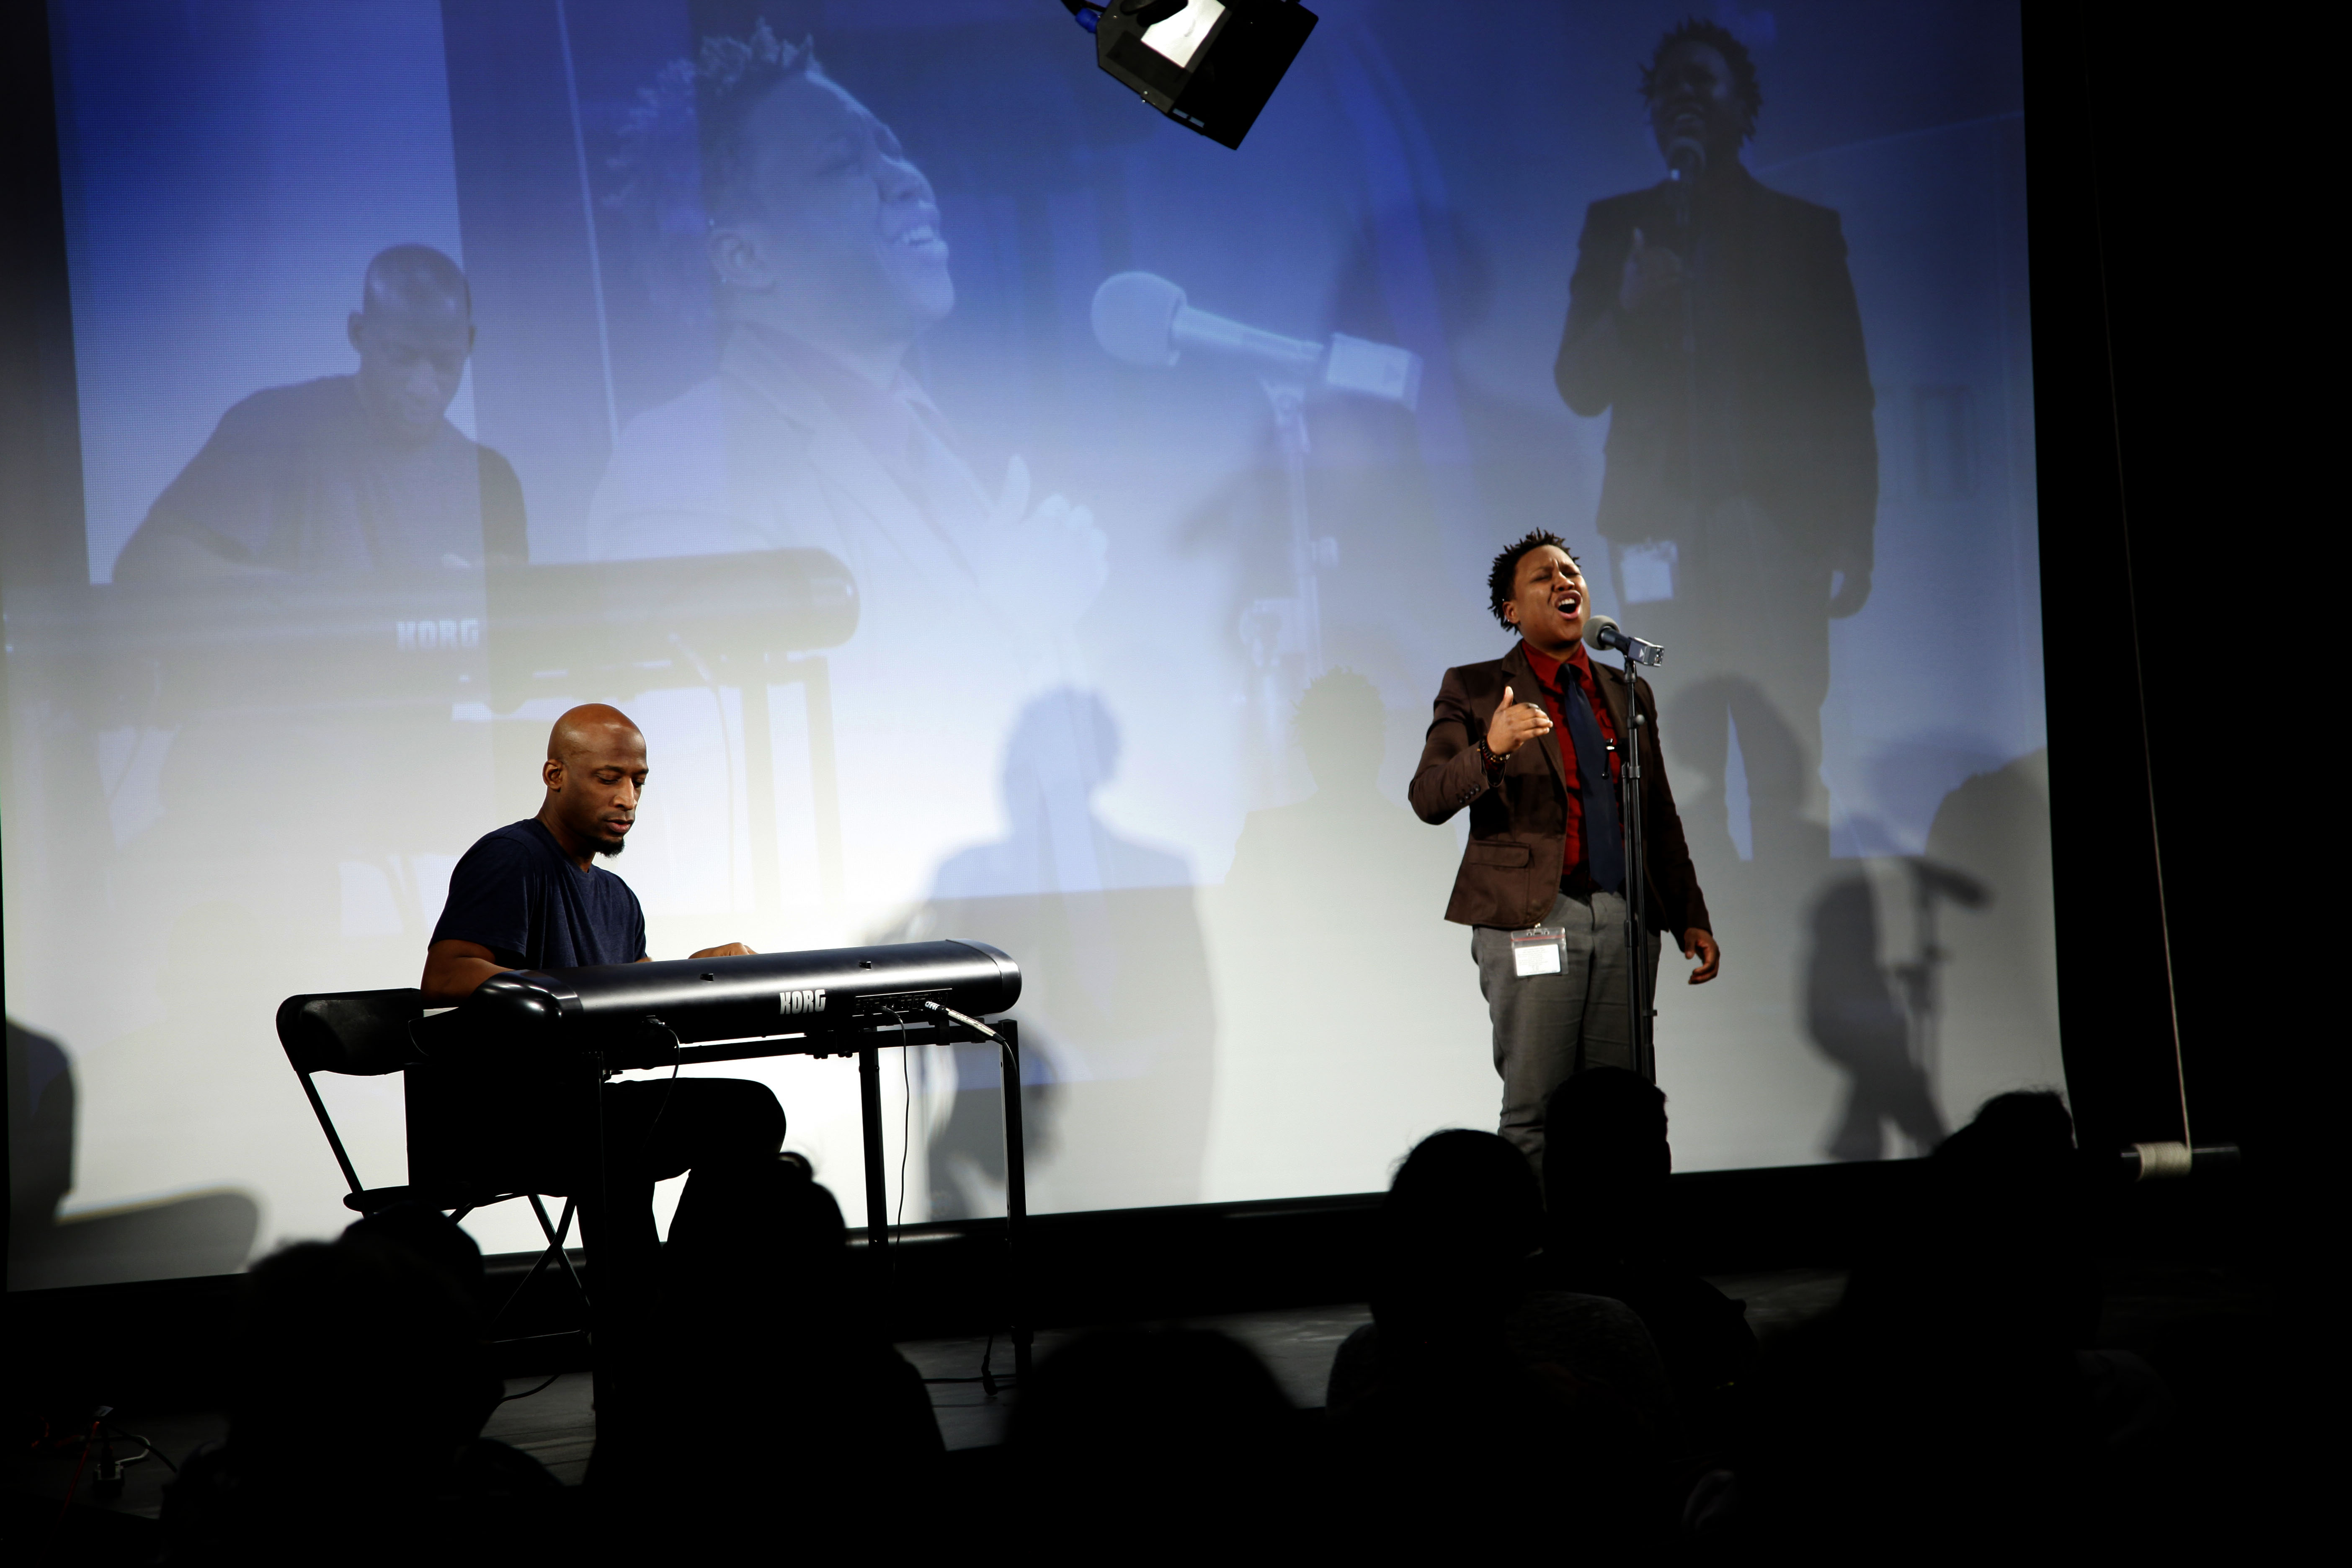 jPope and Wendel Patrick Performance